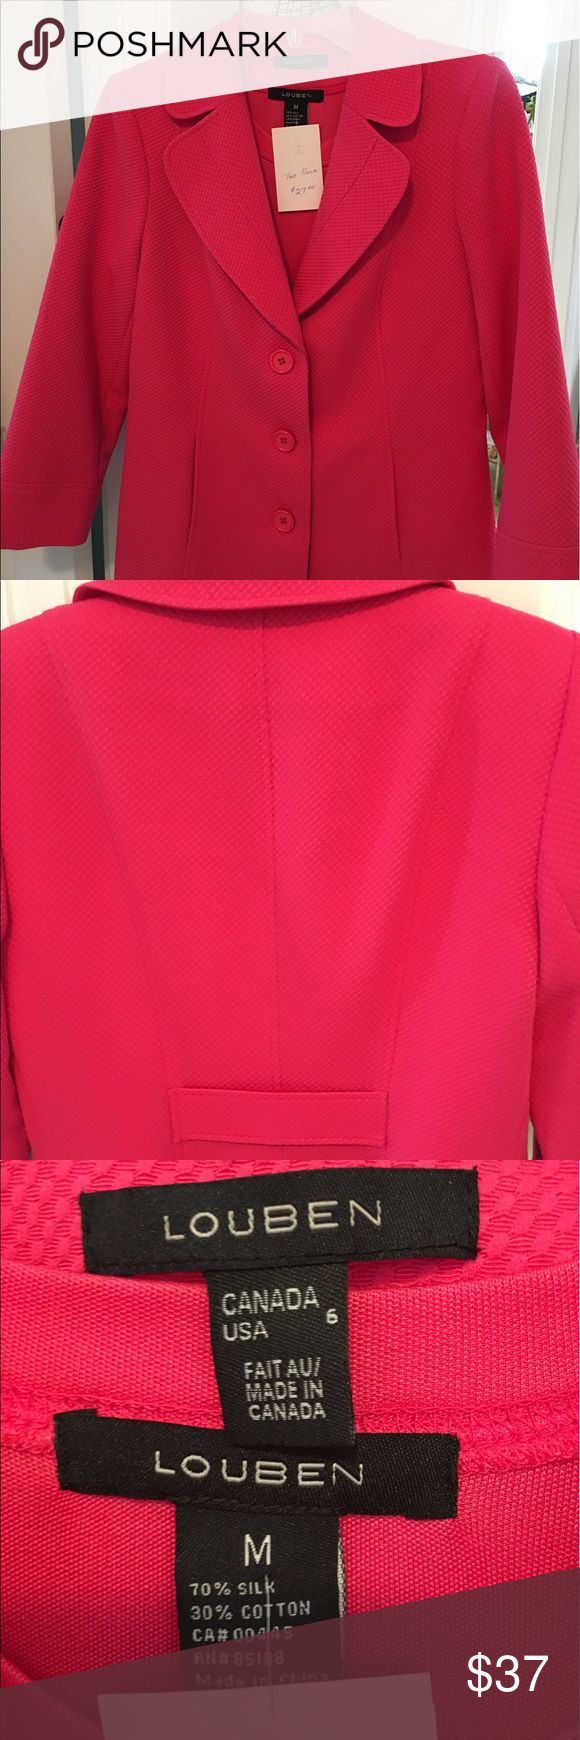 Louben Ladies summer jacket Pink with silk tee-6 Louben Ladies summer jacket Pink with silk tee-Sz 6 the tee has short sleeves....The jacket has long sleeves and is slightly longer than the other style - Beautiful shocking pink color Louban Jackets & Coats Blazers